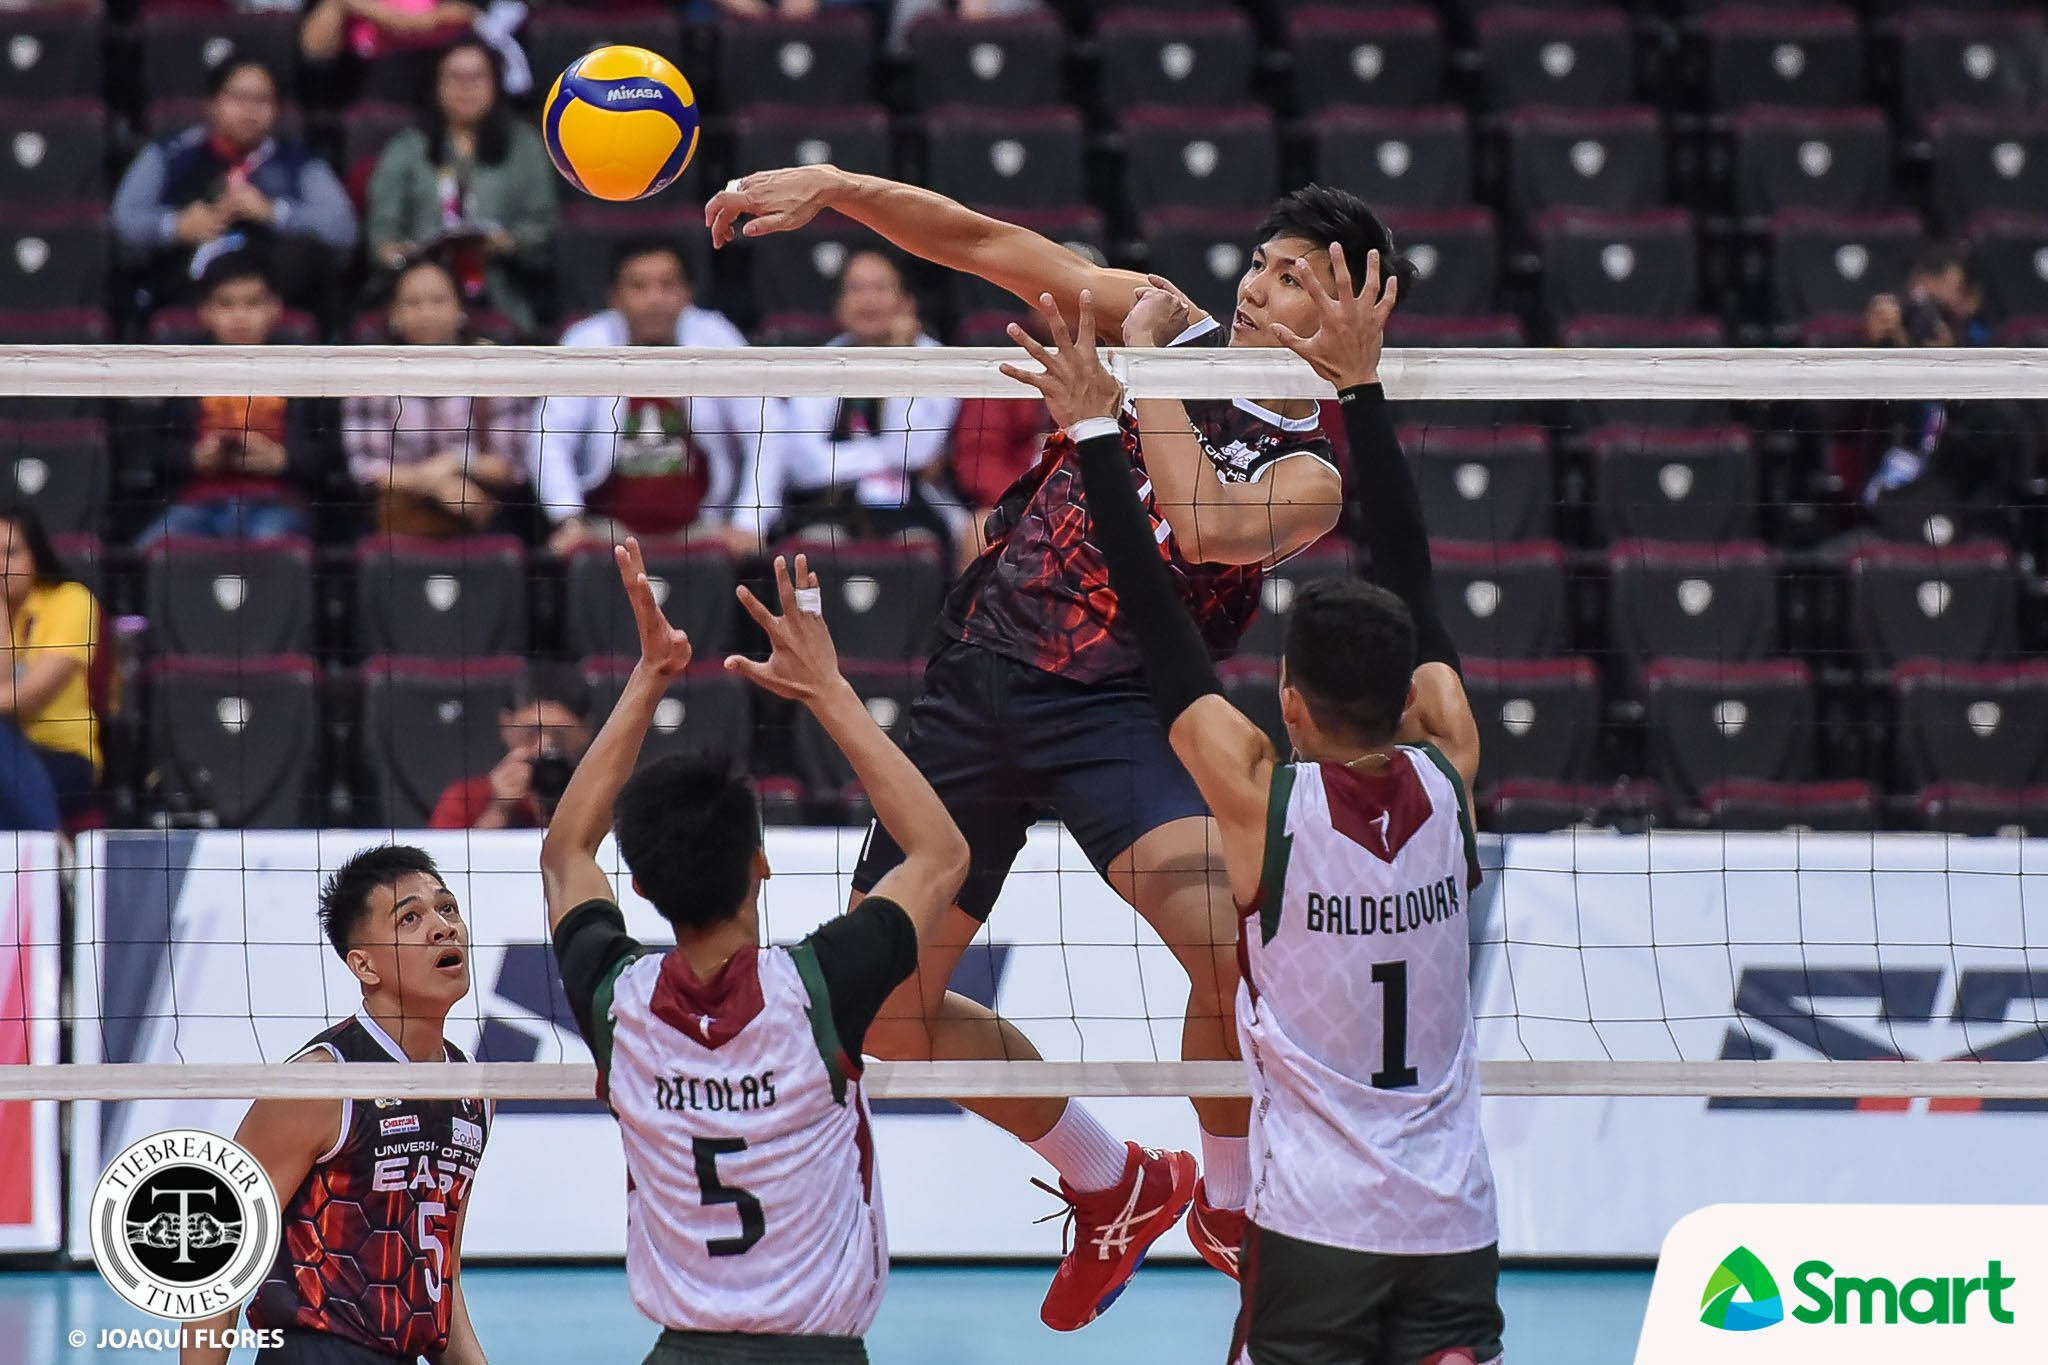 Tiebreaker Times Josafat erupts for 32, lifts UE Red Warriors past UP in UAAP 82 News UAAP UE UP Volleyball  upmen's volleyball UE Men's Volleyball uaap season 82 men's volleyball UAAP Season 82 Ralph Imperial Rald Ricafort Miguel Nasol Mac Millete Louis Gamban Kenneth Culabat John Lomibao John Andaya Jerome Guhit Jerahmeel Baldelovar